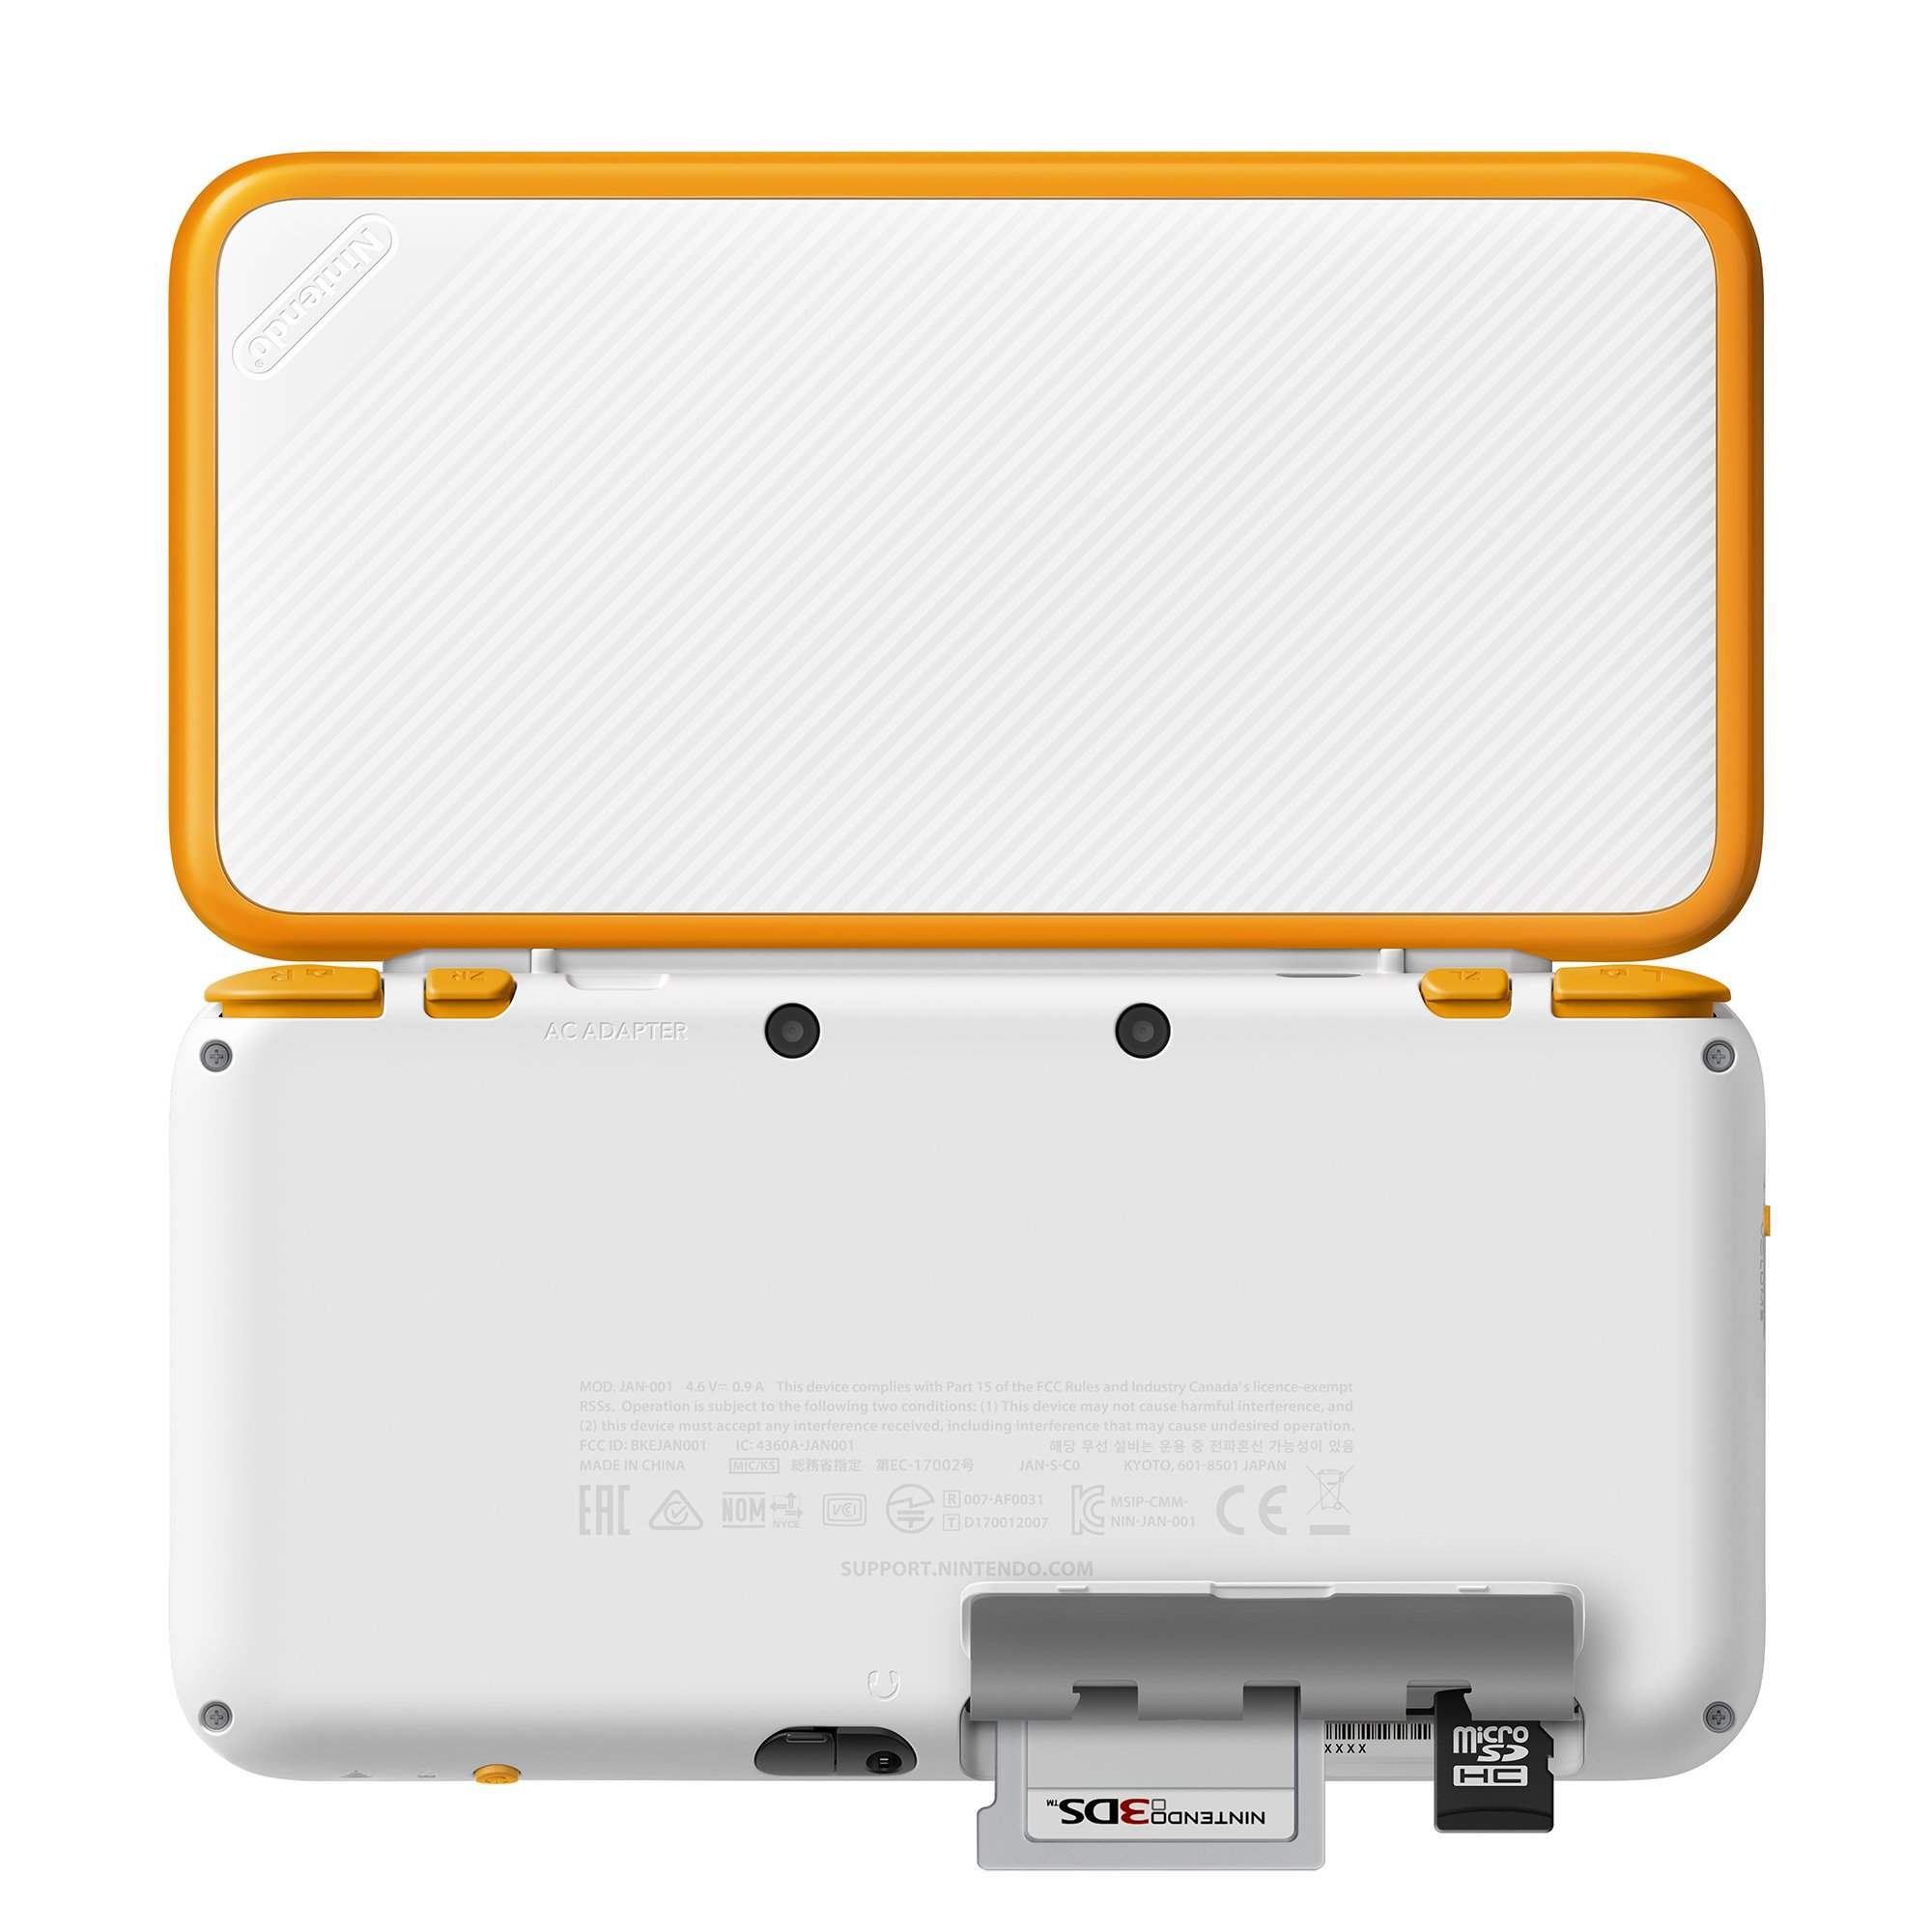 New Nintendo 2DS XL Handheld Game Console - Orange + White With Mario Kart 7 Pre-installed - Nintendo 2DS by Nintendo (Image #3)